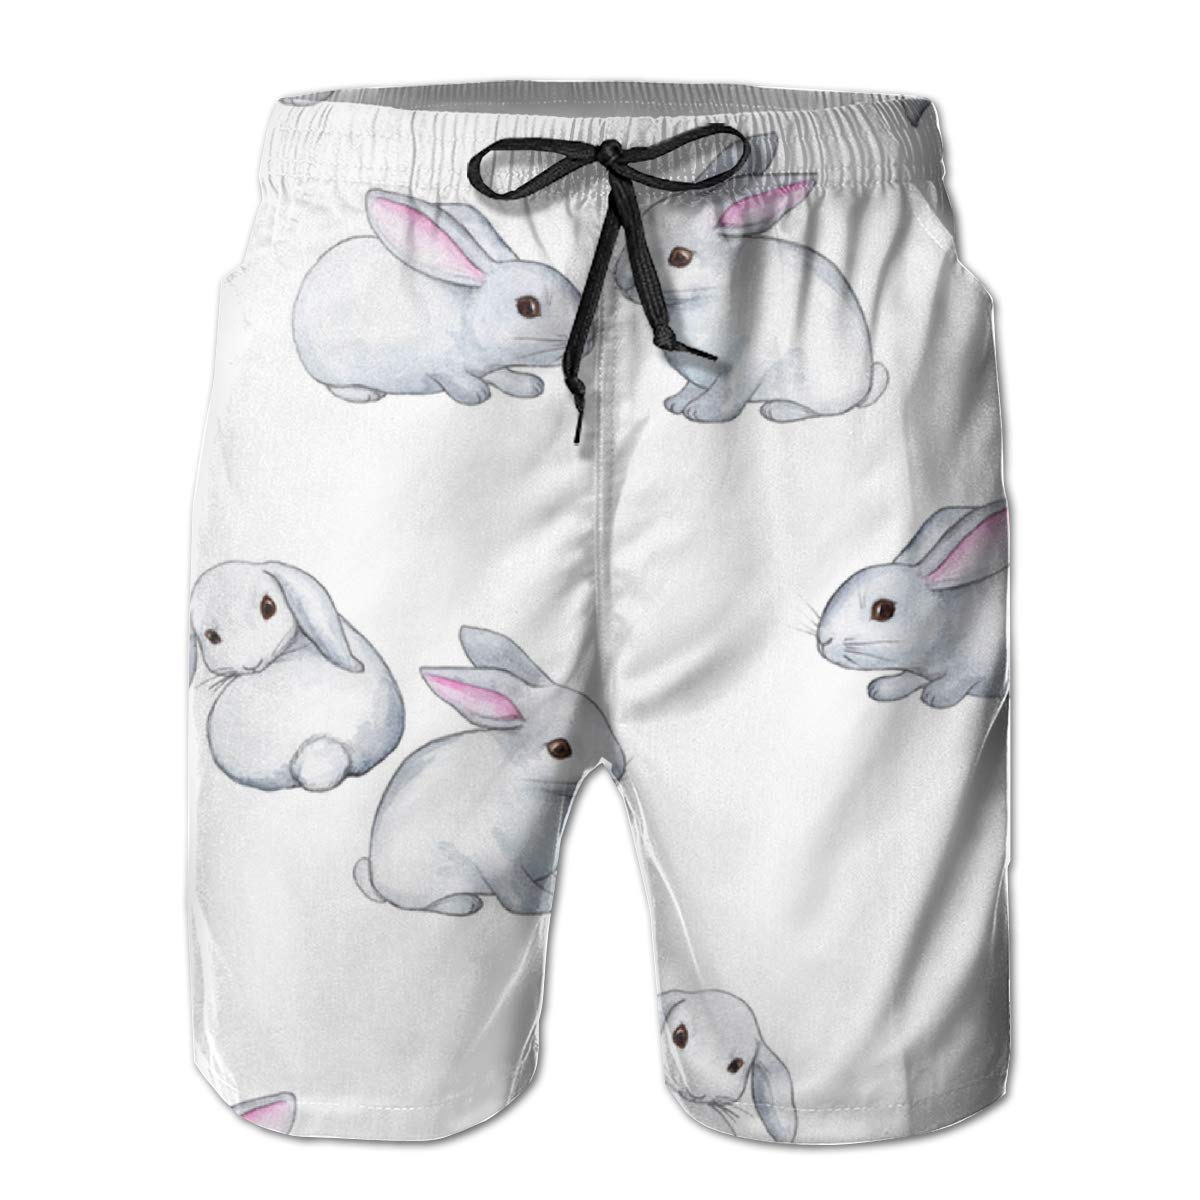 Mens Swim Trunks Rabbit Cute Easter Watercolor White Beach Shorts Quick Dry Mesh Lining Board Shorts Swimwear with Pockets